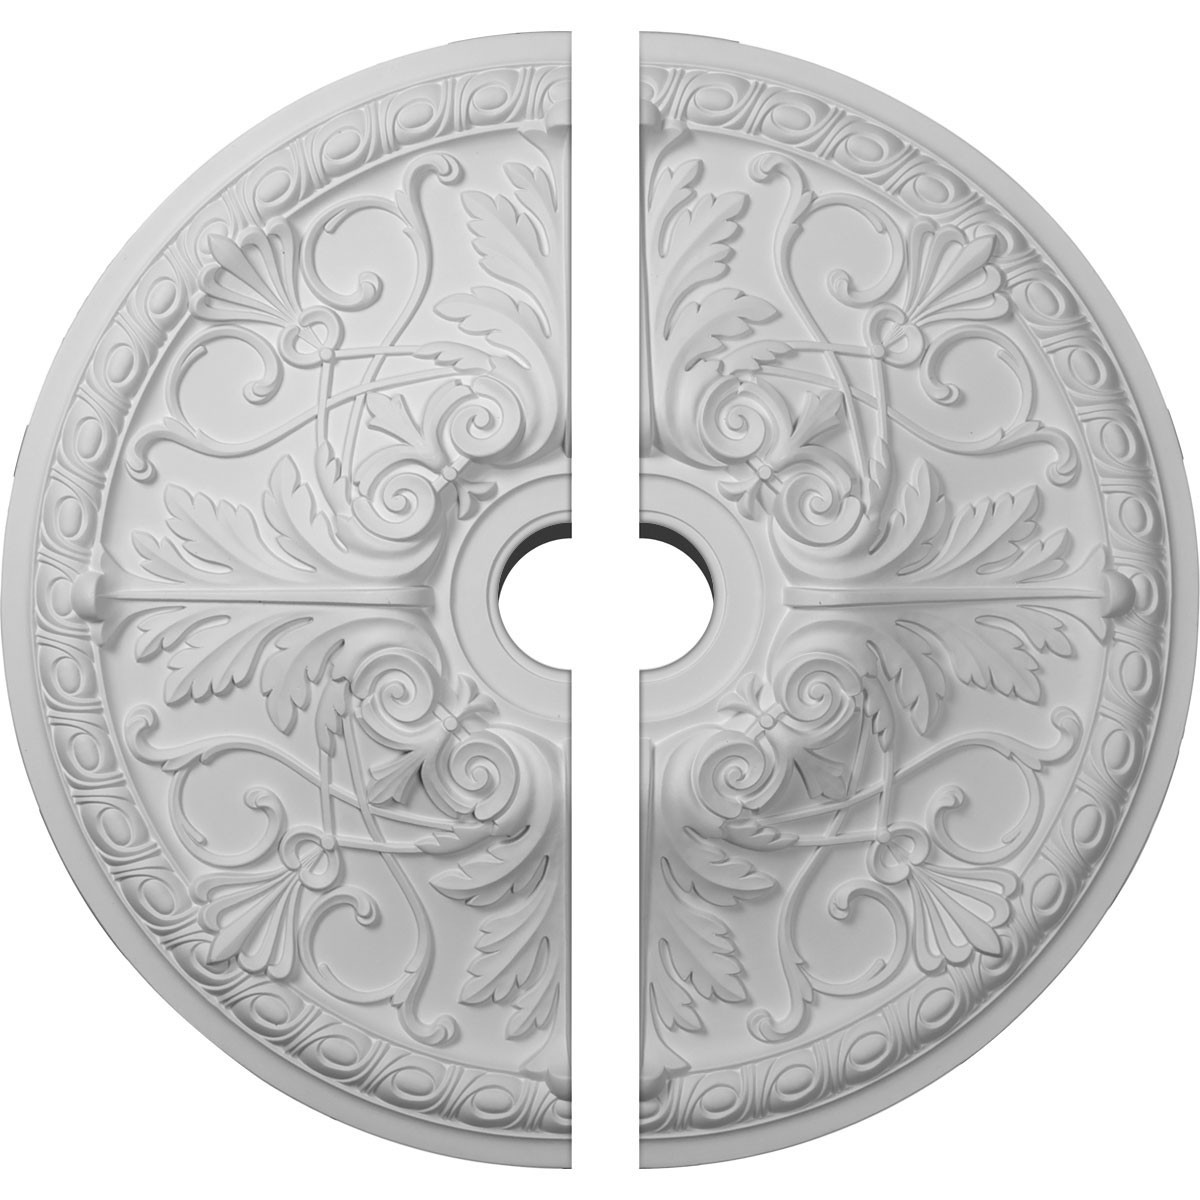 """EM-CM26TN2-03500 - 26""""OD x 3 1/2""""ID x 3""""P Tristan Ceiling Medallion, Two Piece (Fits Canopies up to 5 1/2"""")"""